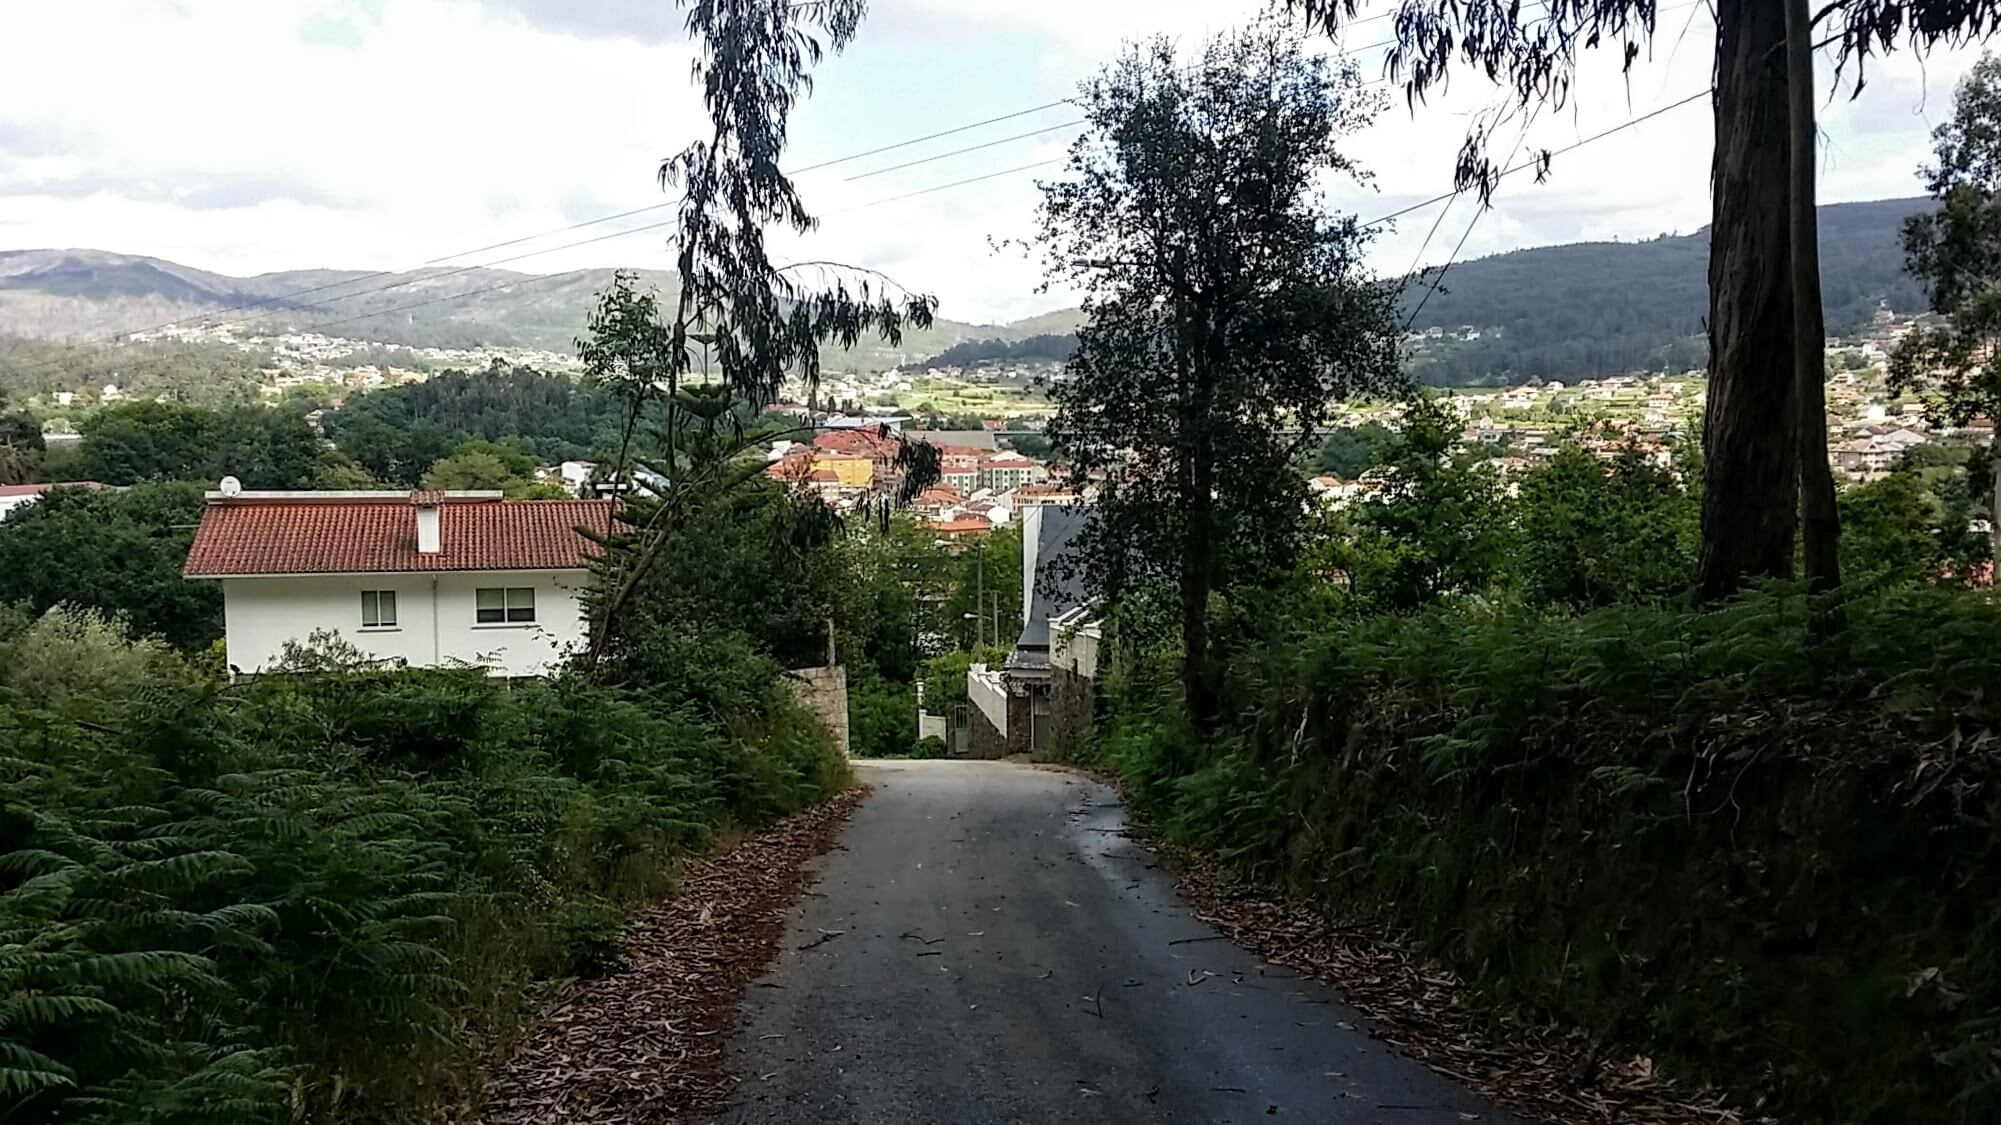 The narrow Camiño das Cardosas into Redondela on day twenty-one of the Camino Portugués